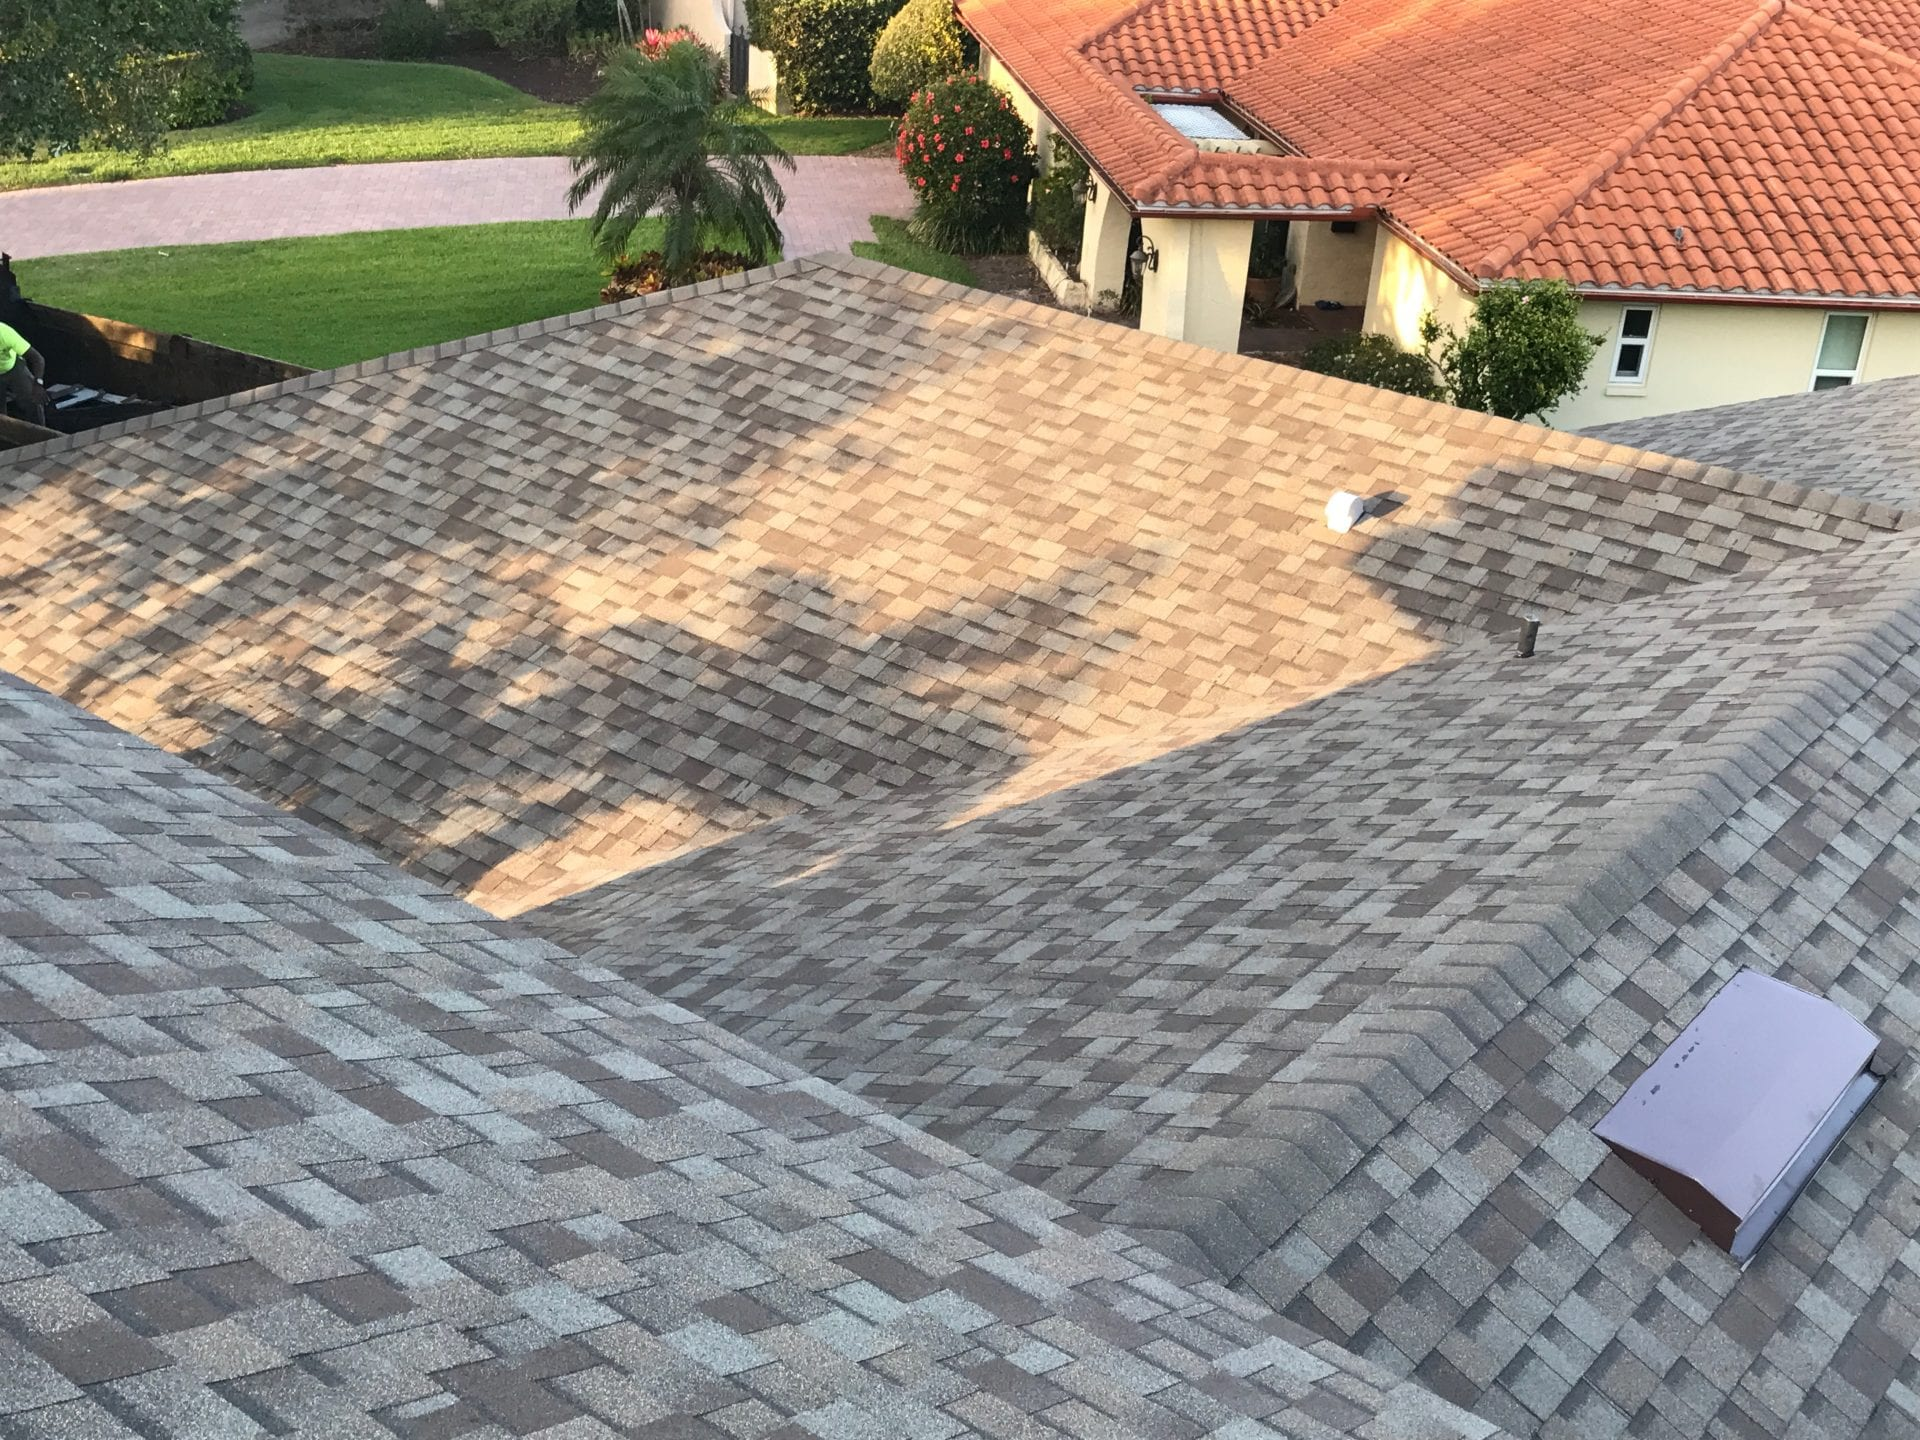 The Best Roofing Types for Tampa Homes